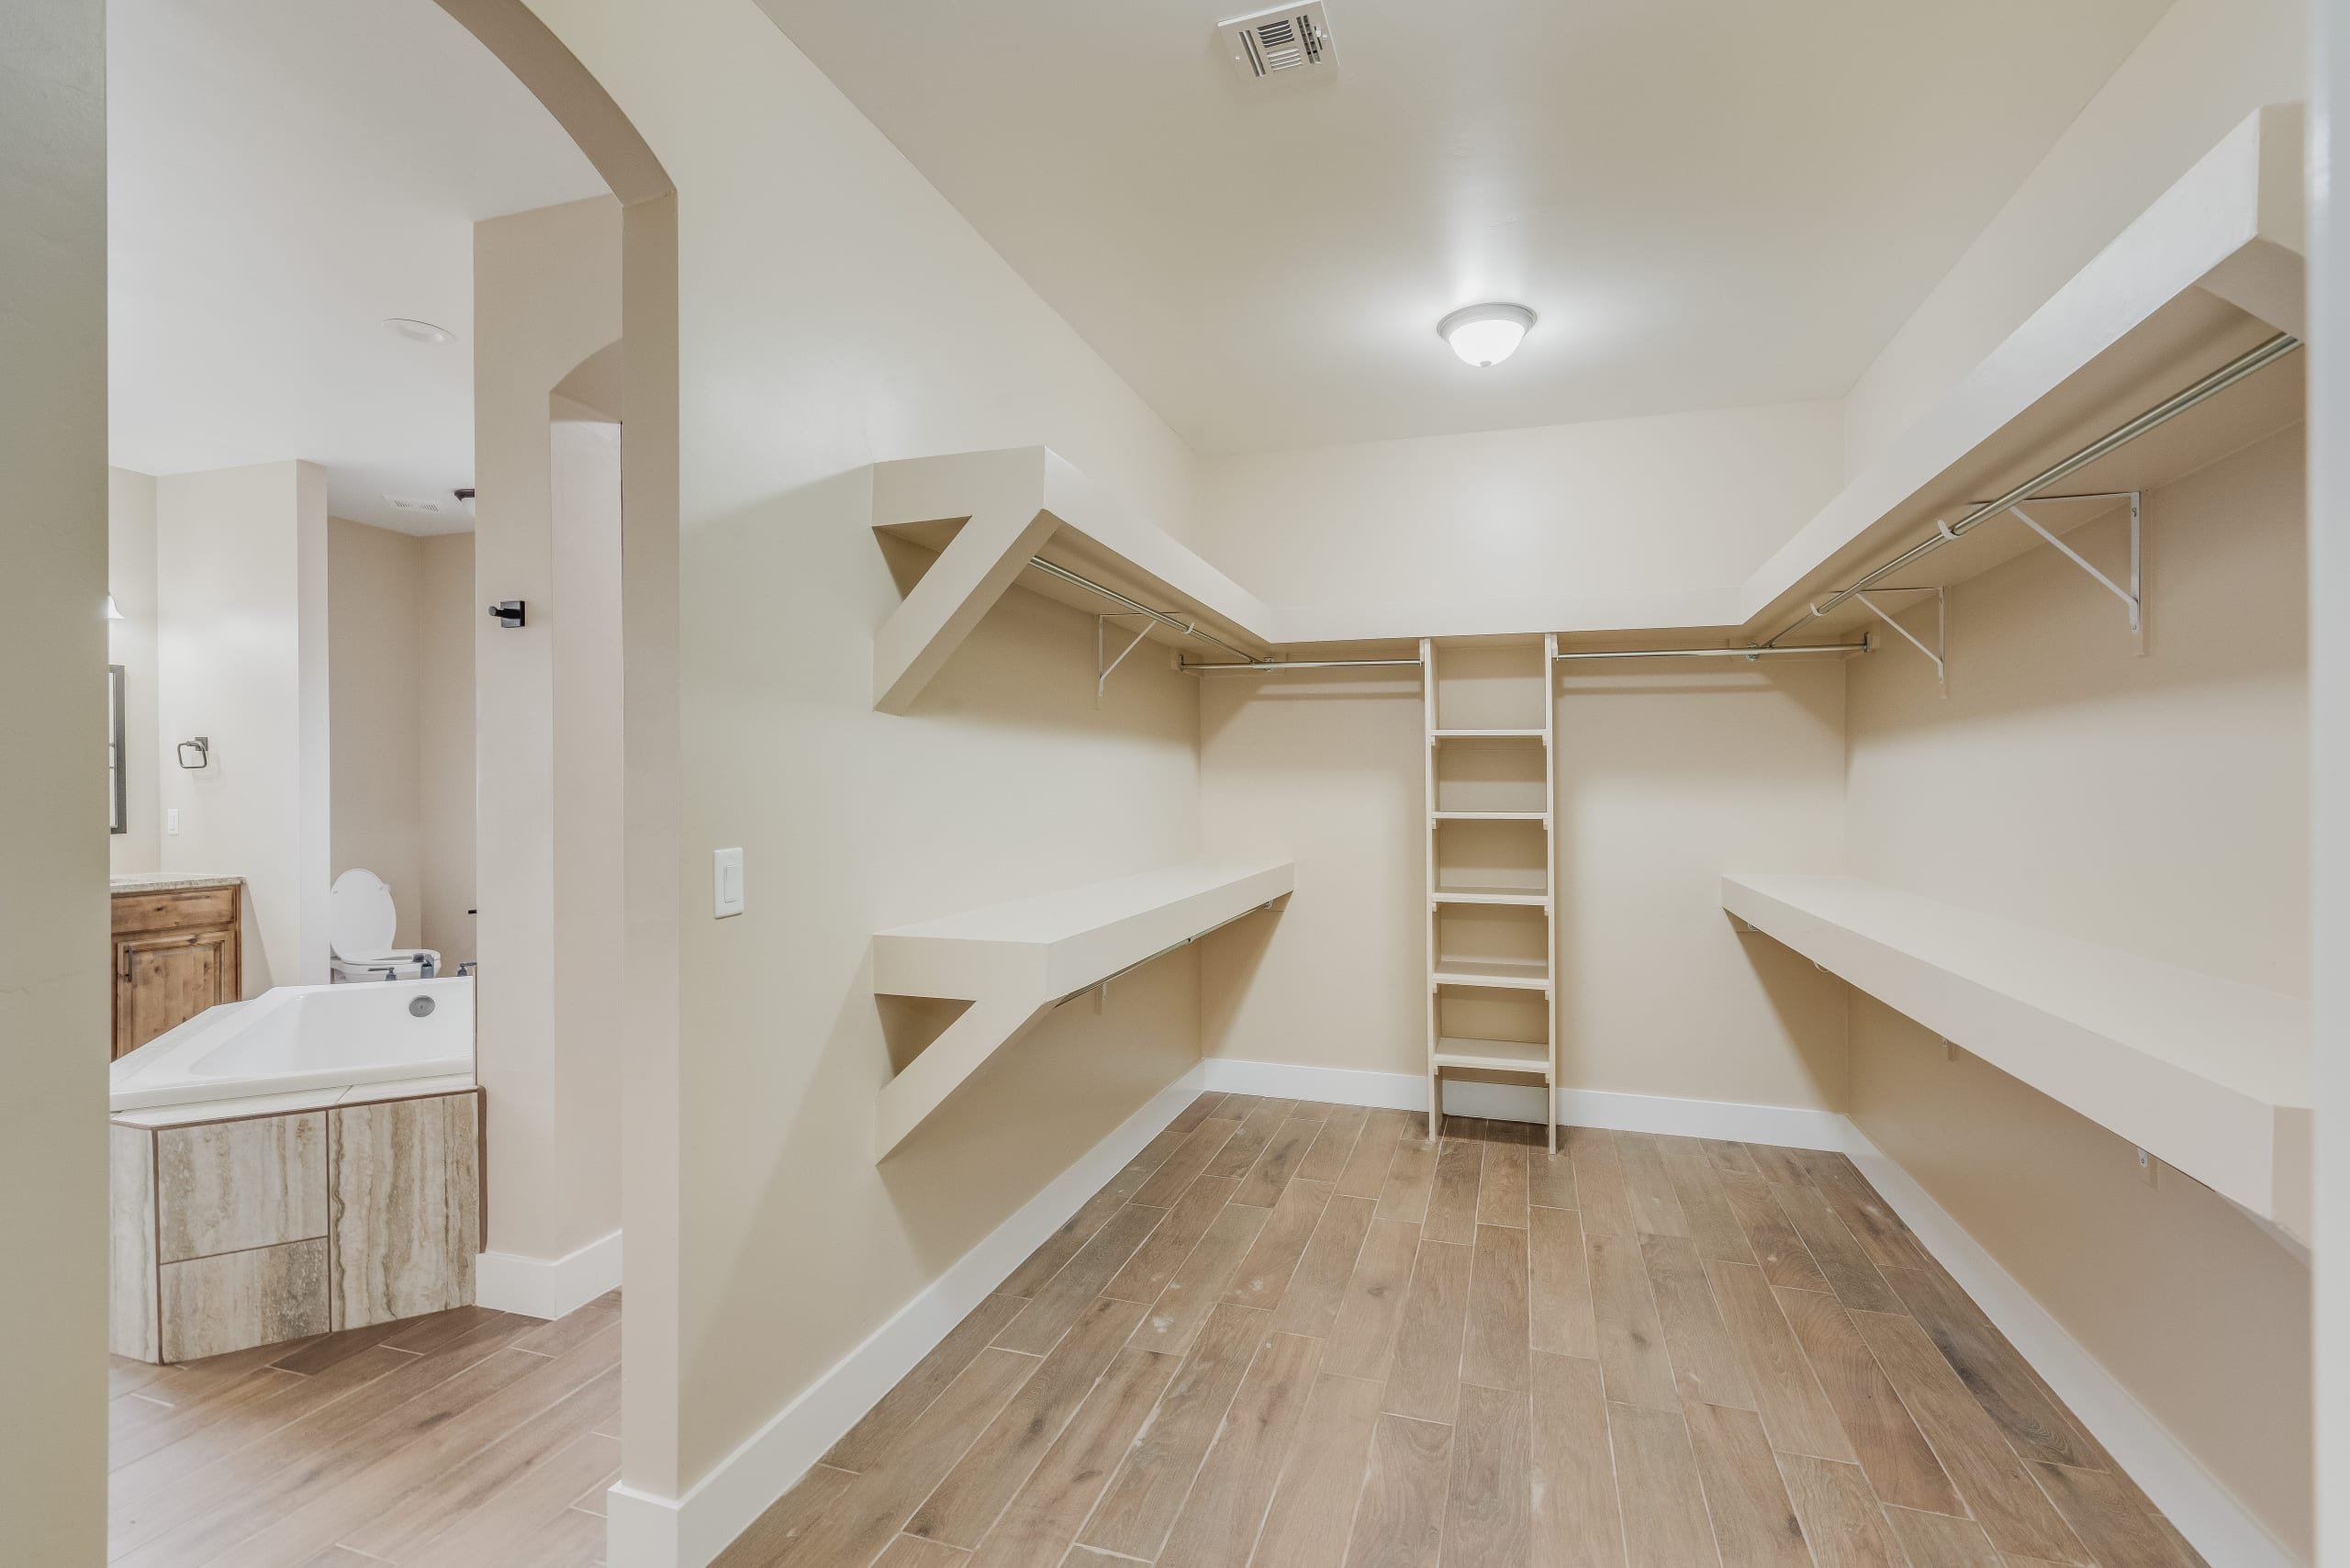 Interior shot of master bedroom walk-in closet in 3420 Calle Bedado